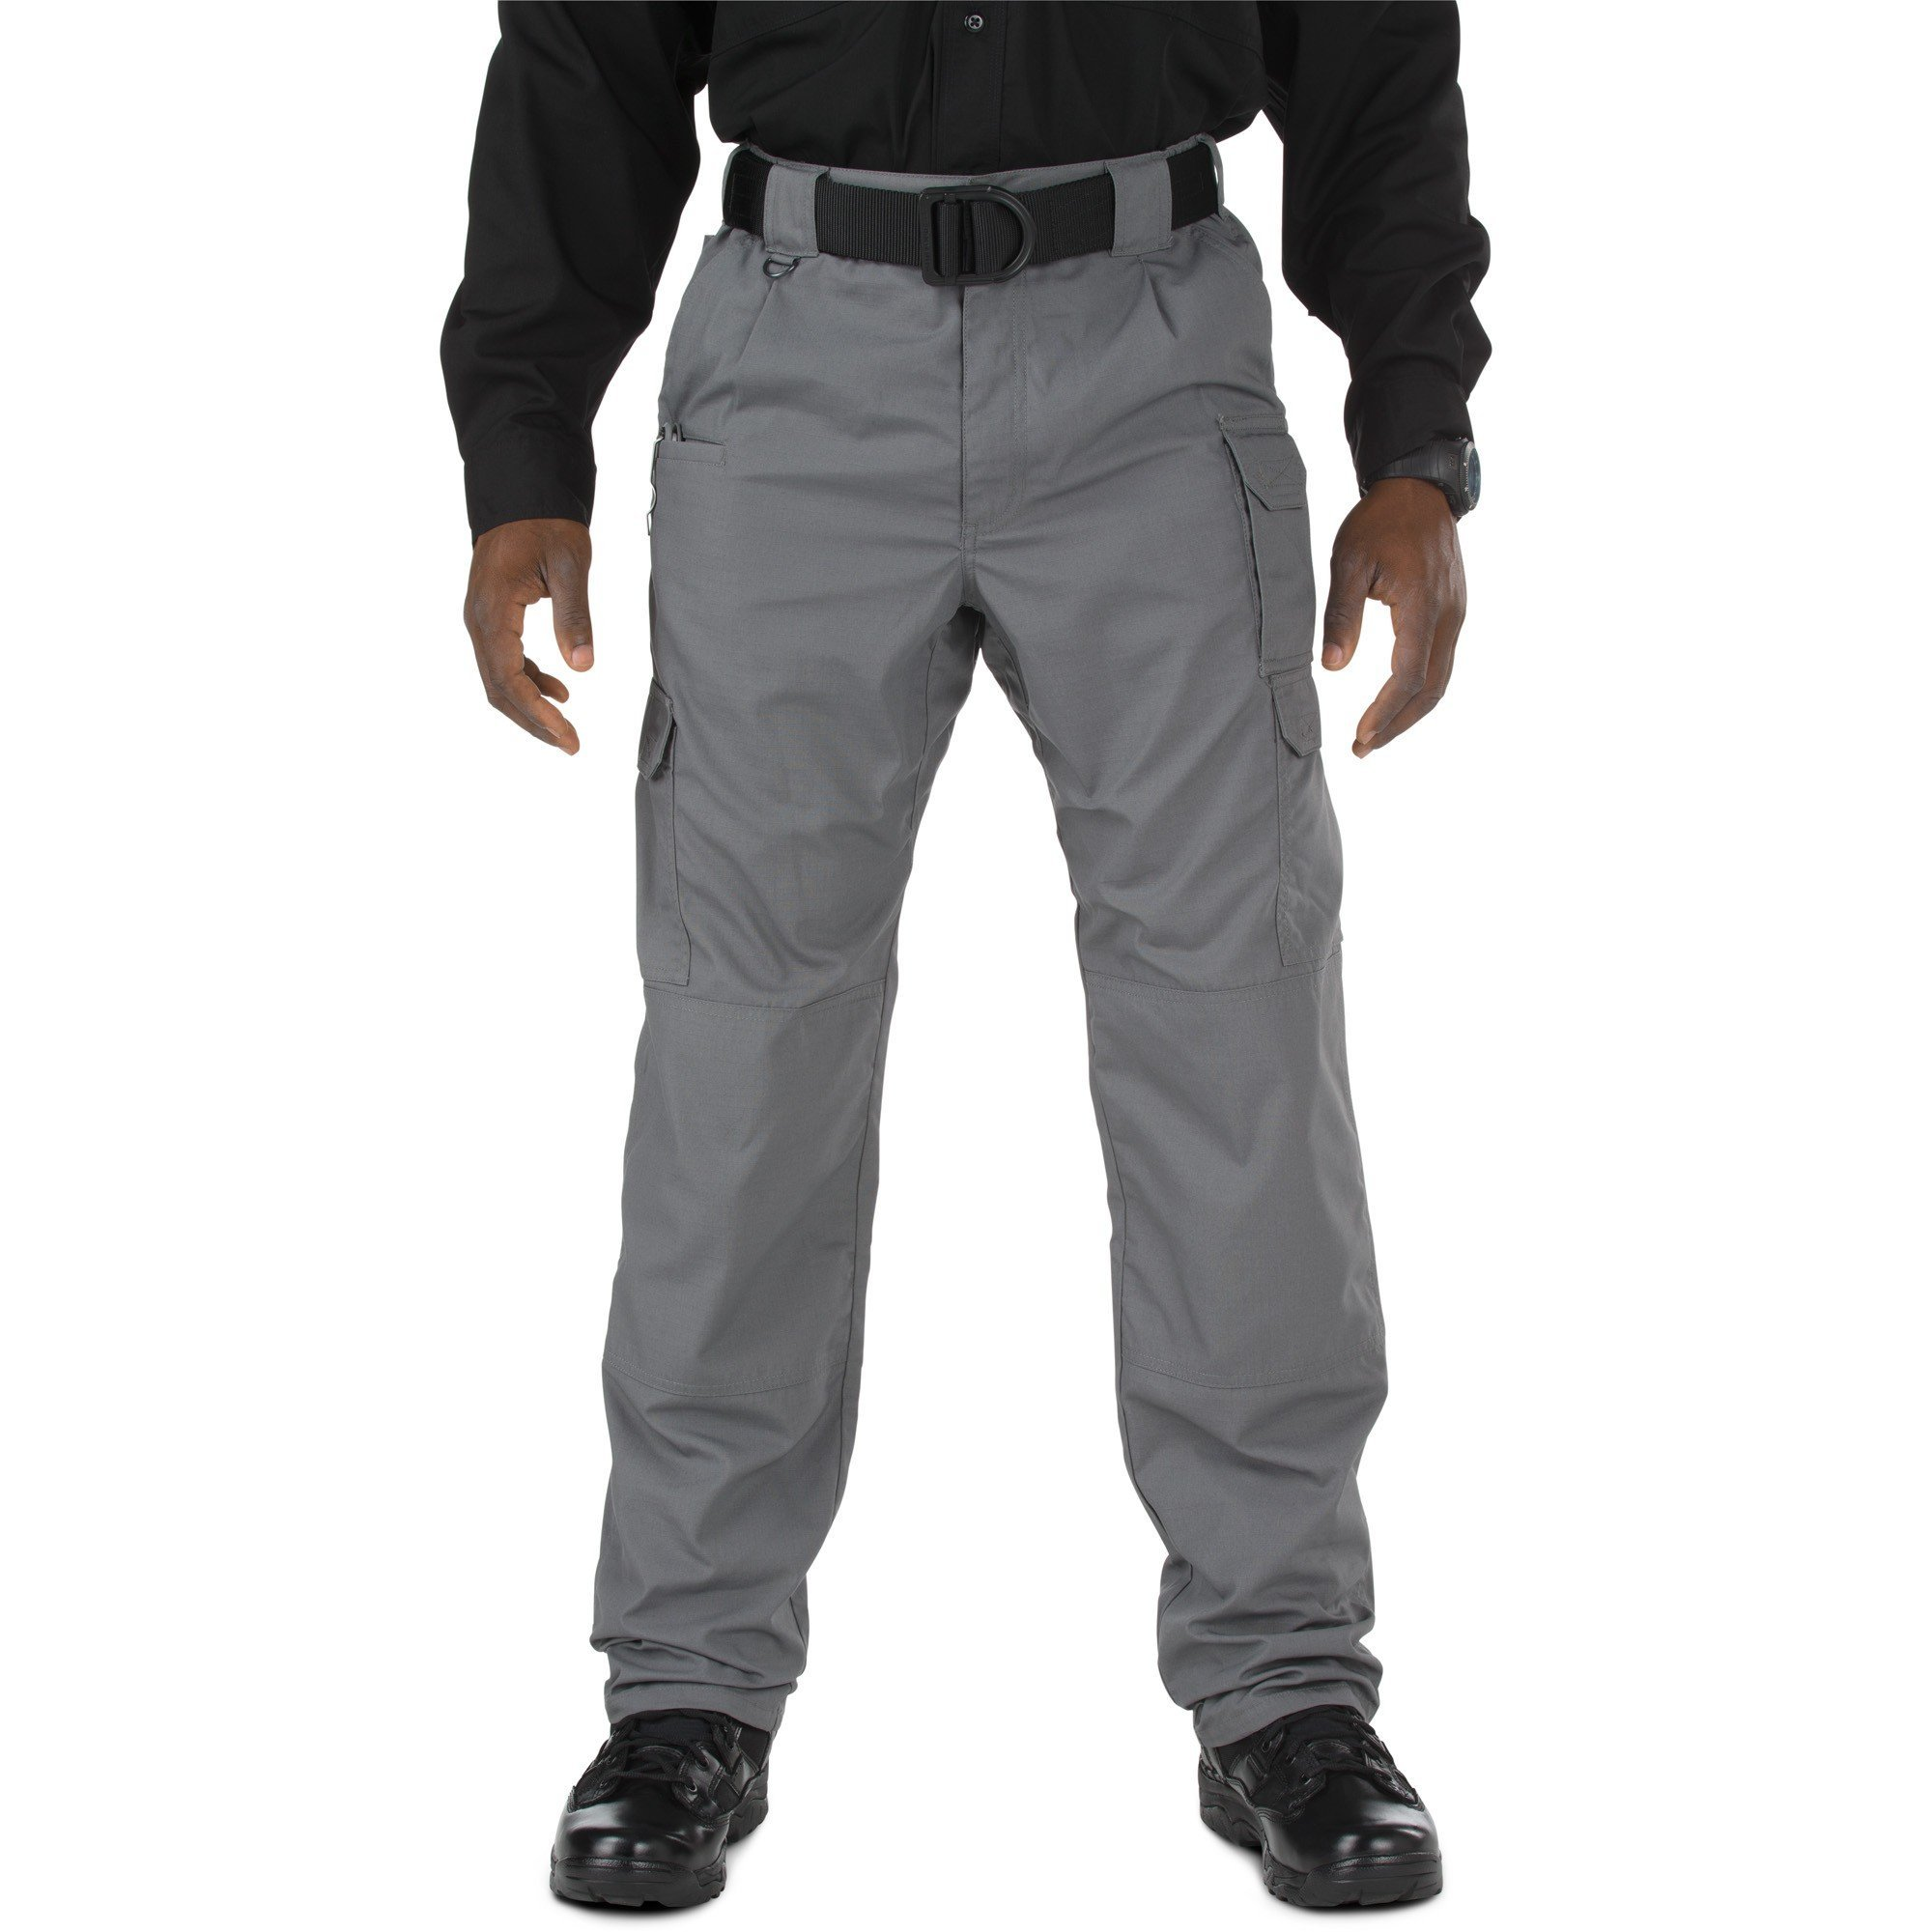 5.11 Tactical Men's Taclite Pro EDC Pants, Storm, 36-Waist/30-Length